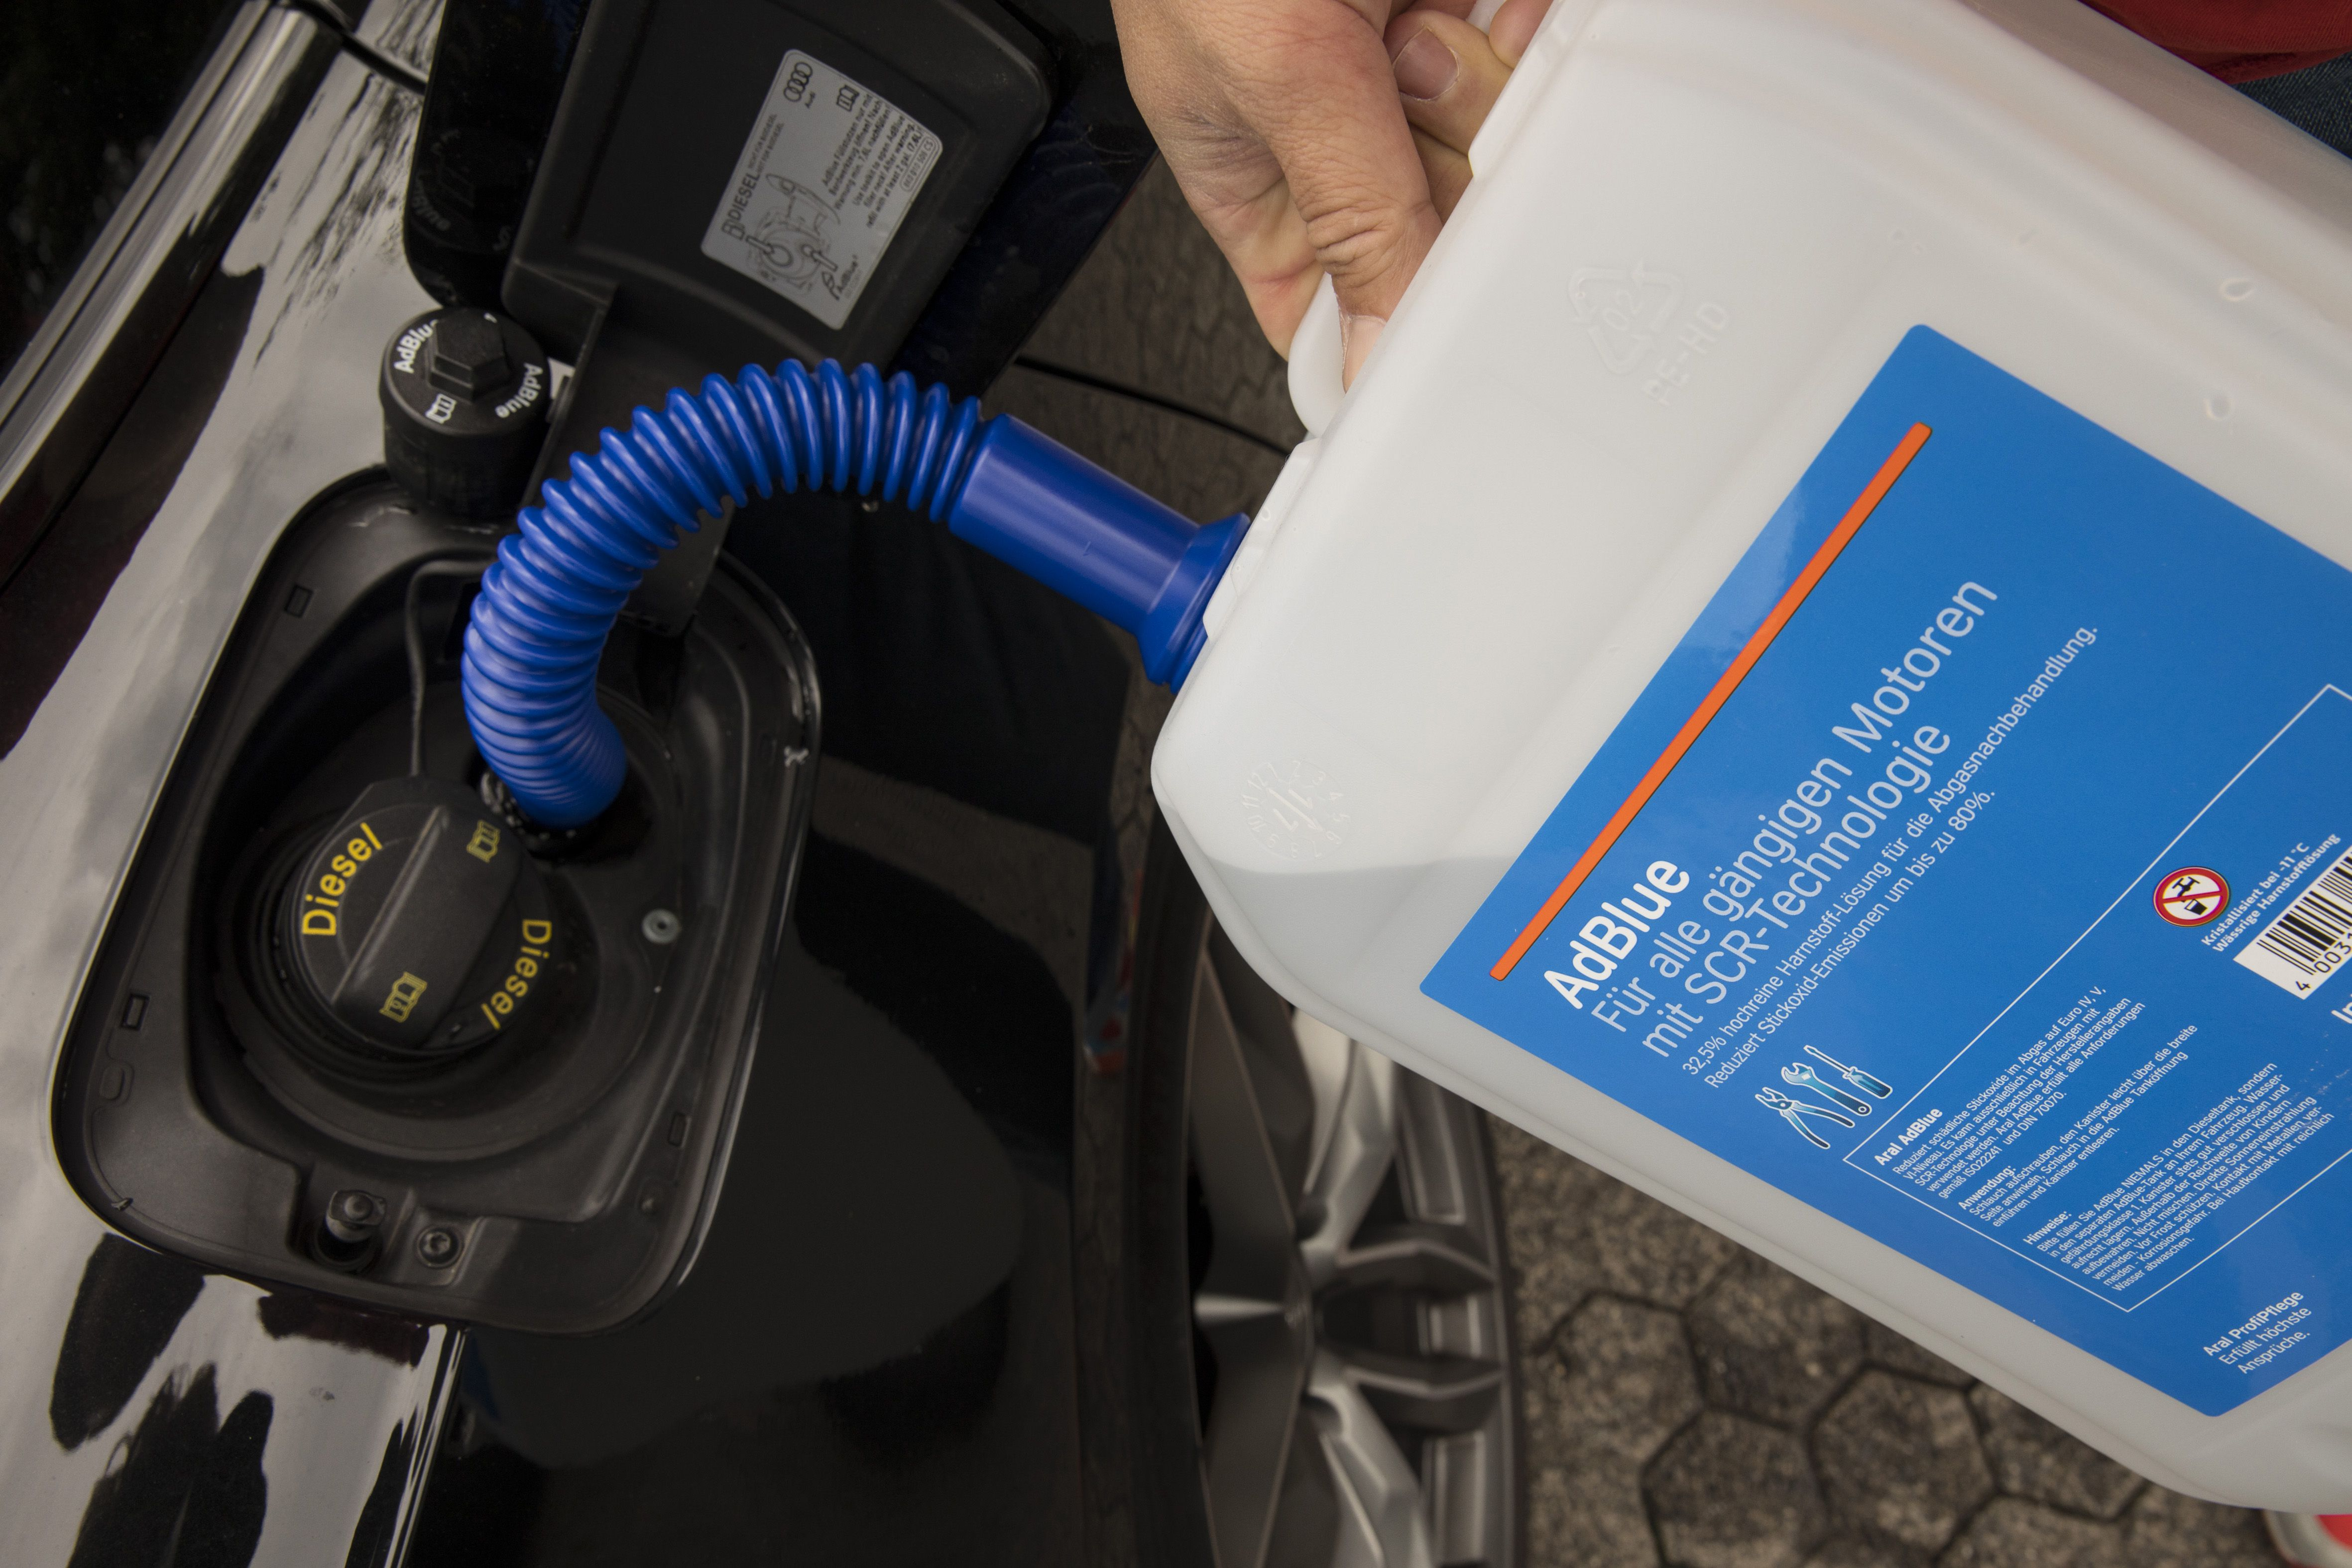 Audi Emission Testing And AdBlue Pollutant Neutralizing Fluid Refilling As Allegations Of Diesel Cheating Collusion Grow